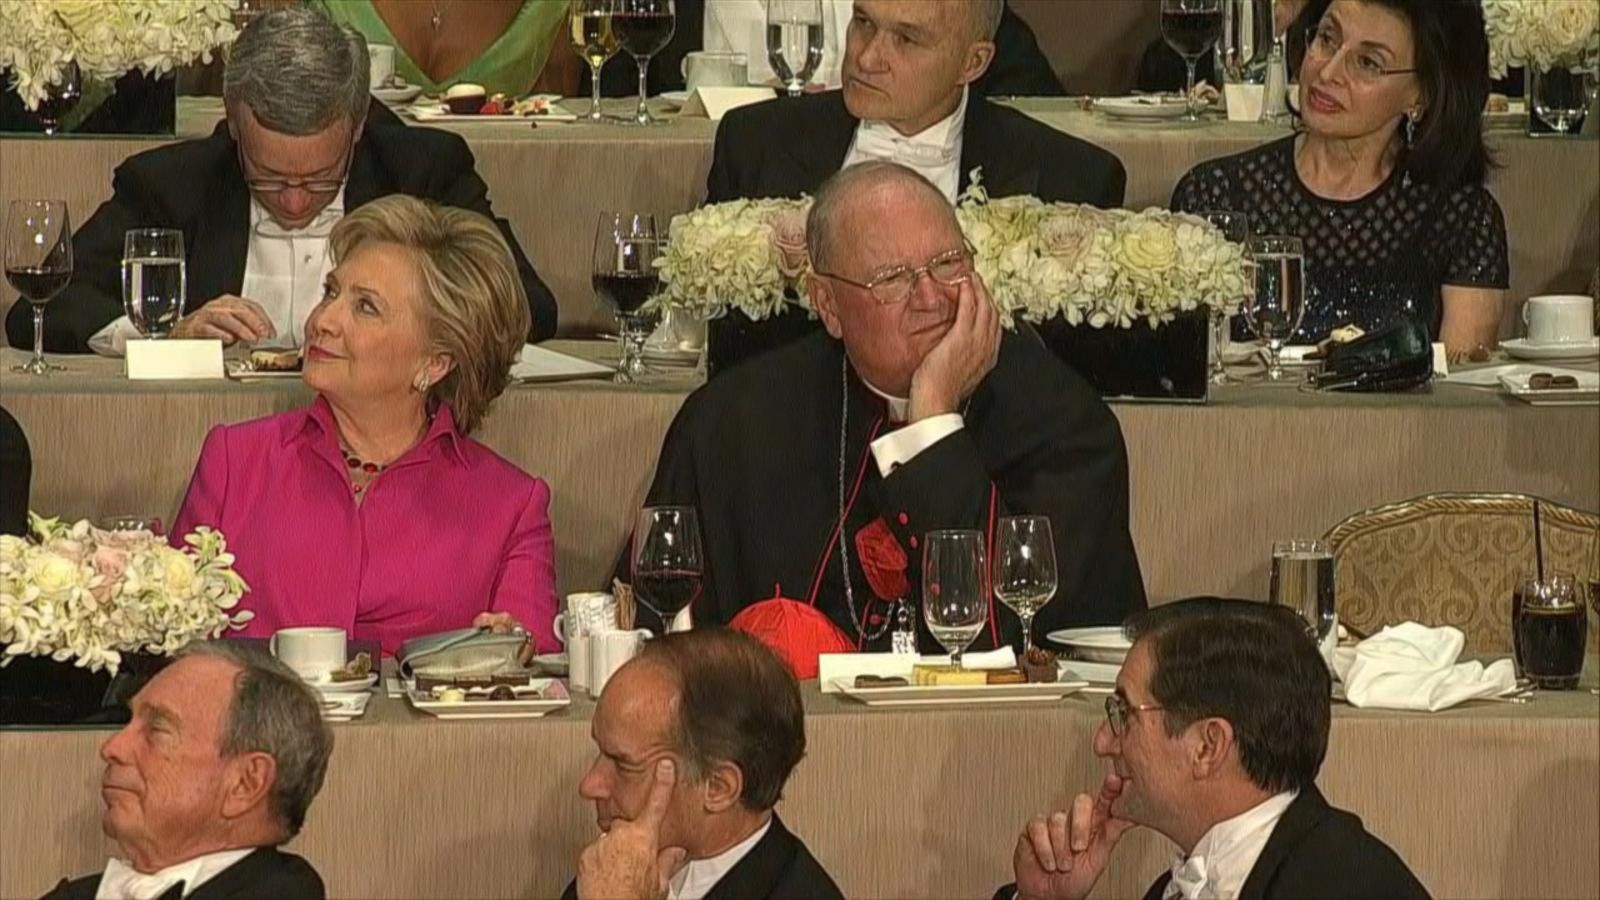 VIDEO: Donald Trump, Hillary Clinton Trade Punchlines at New York City Charity Dinner